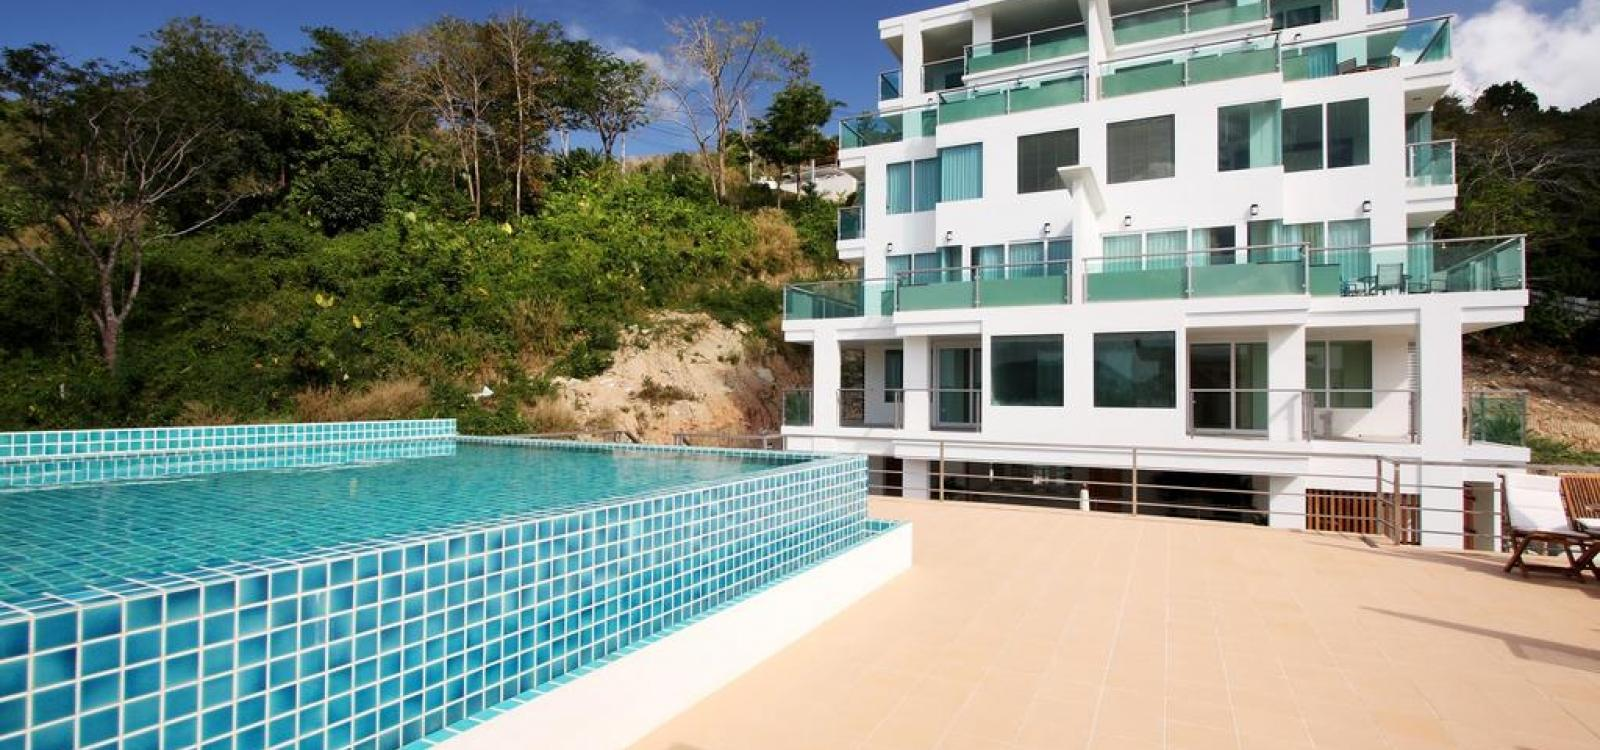 Baycliff - seaview 2 bedroom apt with jacuzzi, pool and kitchen in Patong